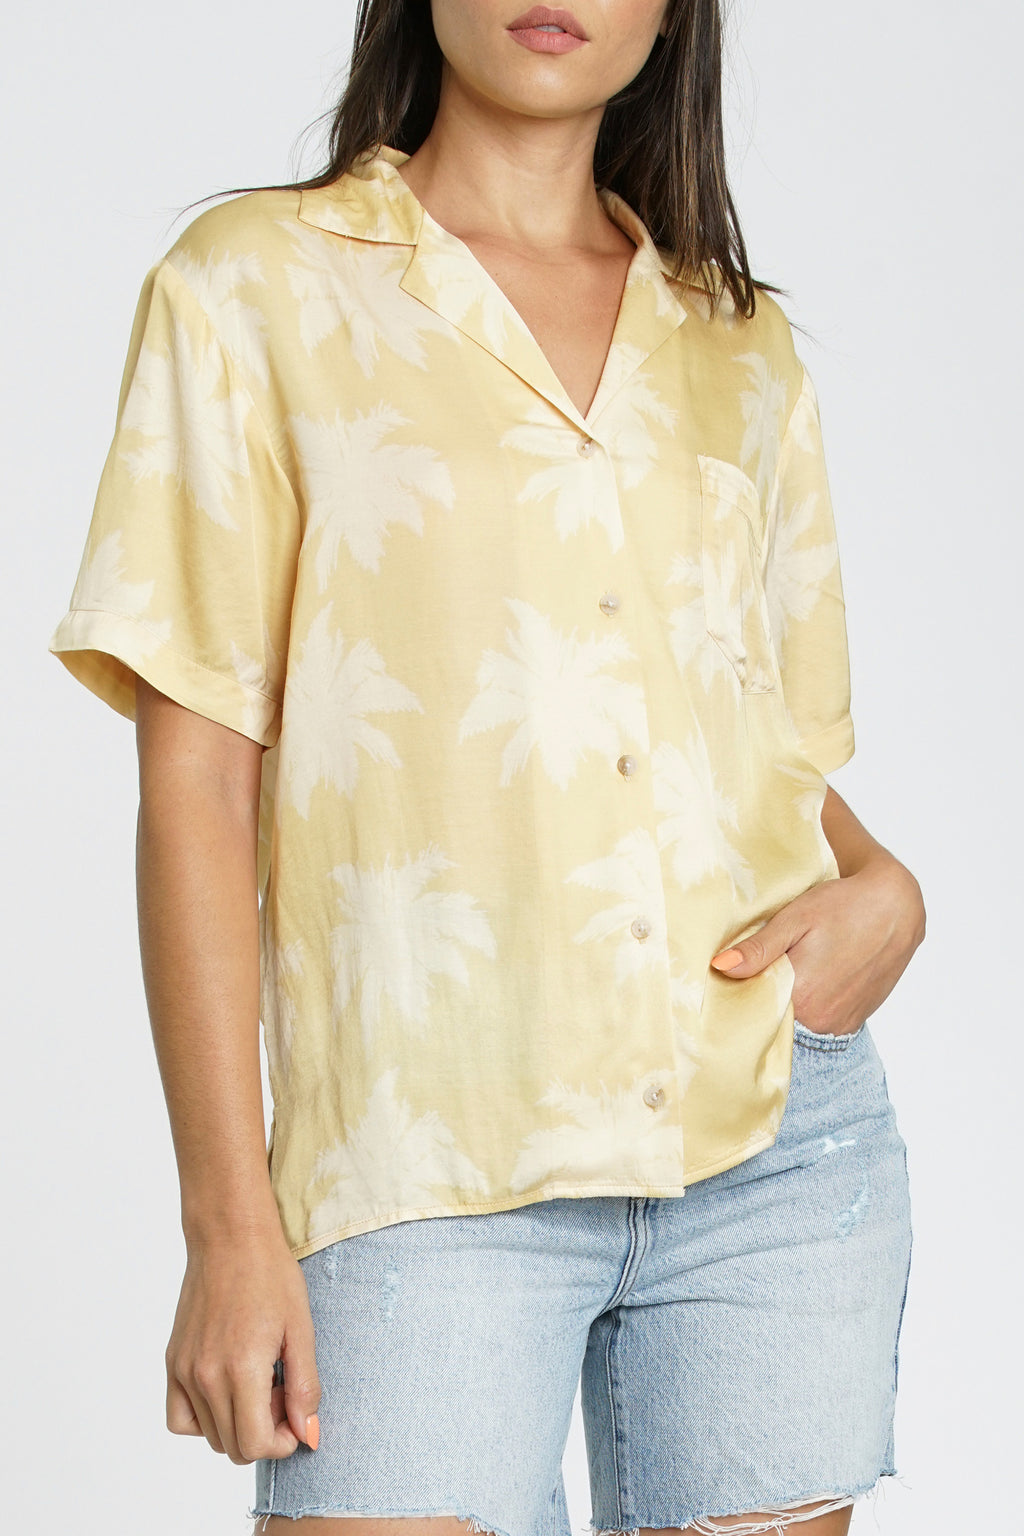 Anya Short Sleeve Hawaiian Shirt - Palm Springs